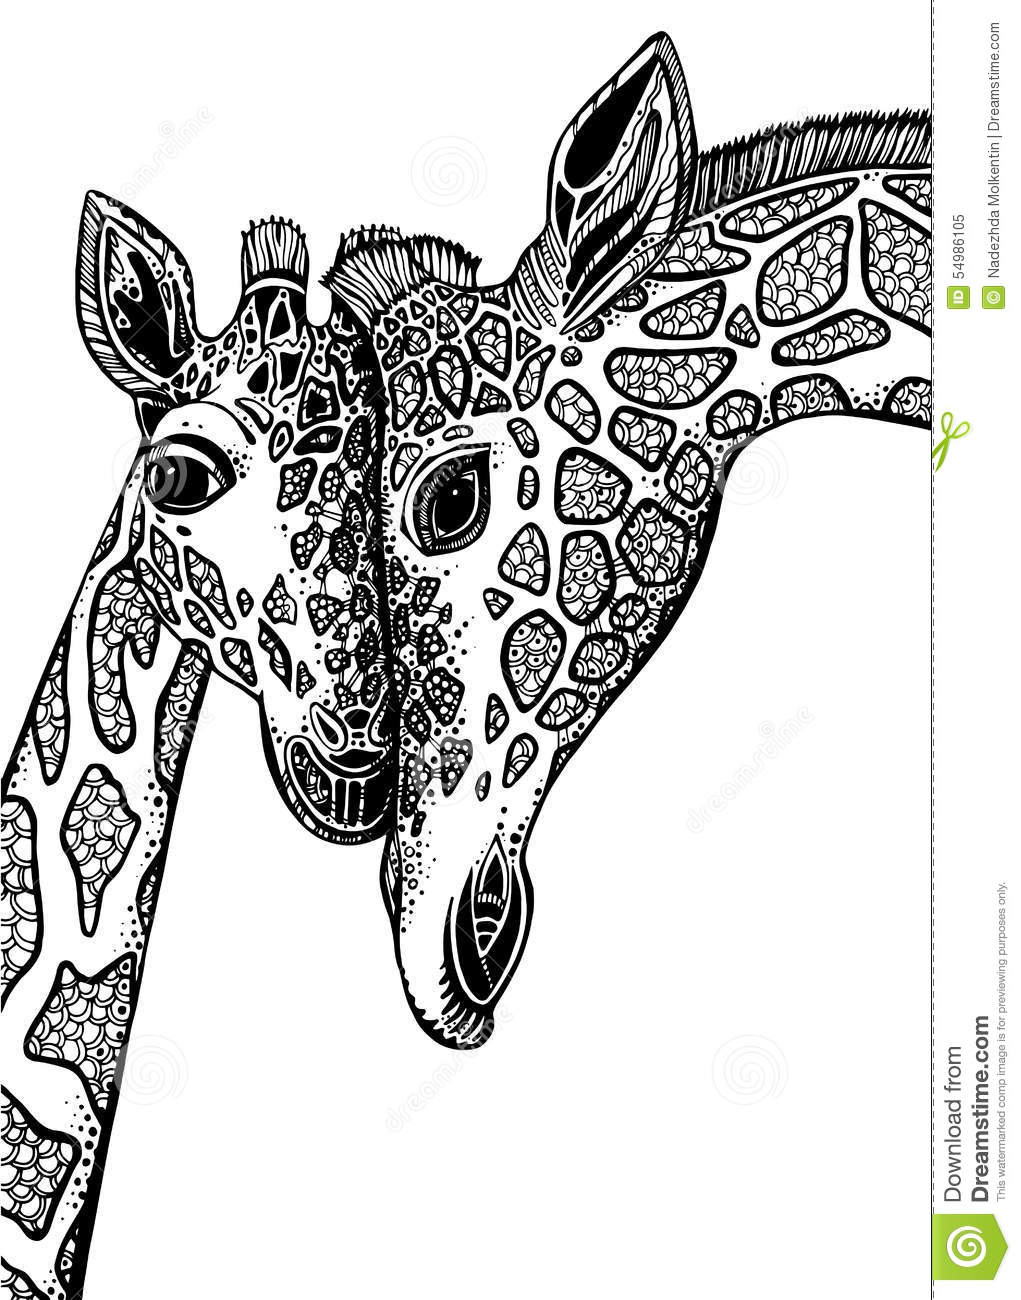 Vector graphic illustration with two giraffes in love - Black and white love pictures ...